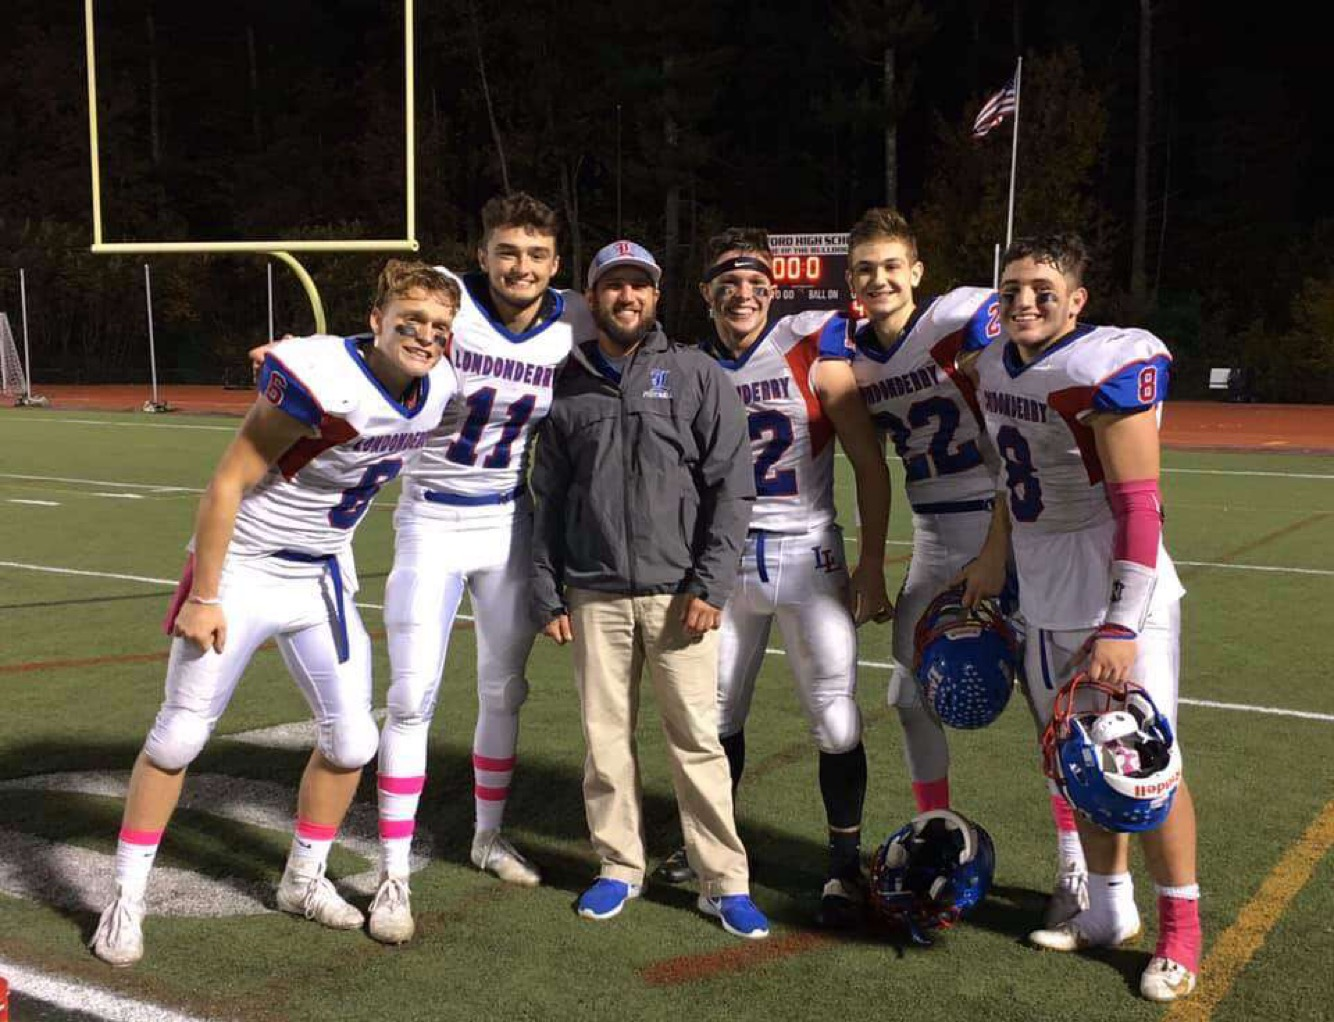 Lancer defenders pose with defensive coordinator, Coach Clement. The Lancers completed an undefeated season with a dominant defense led by Clement.